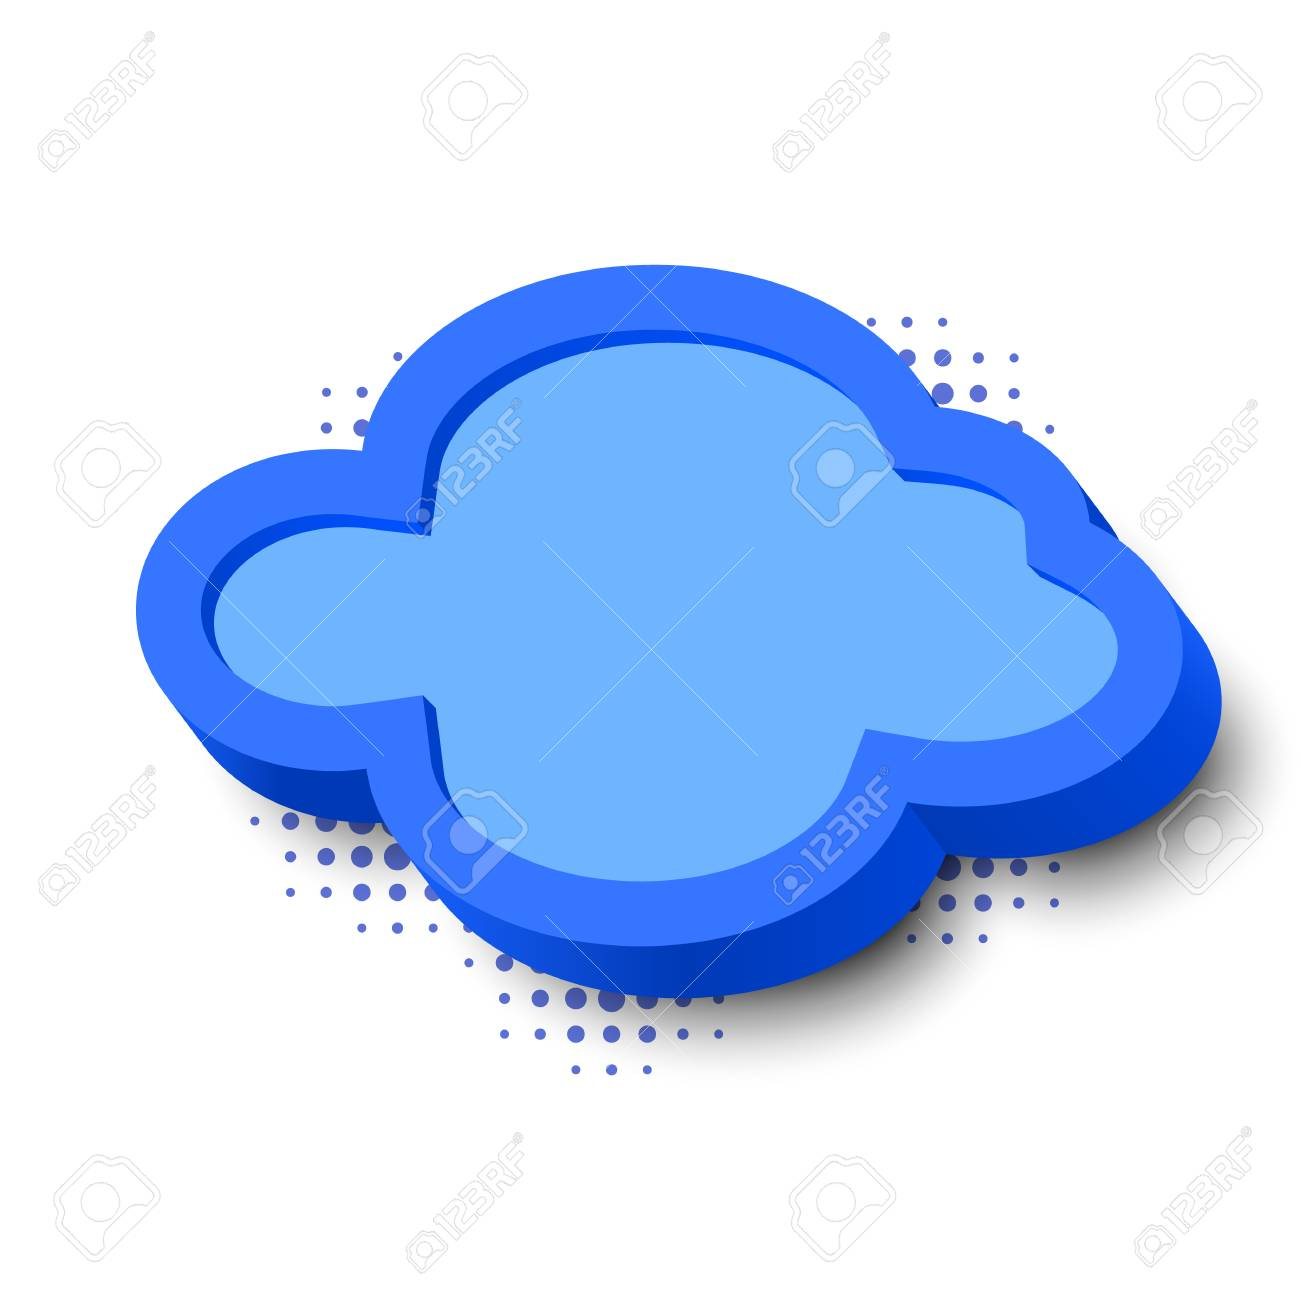 3d Blue Cloud Frame With Border And Halftone Dots Royalty Free ...